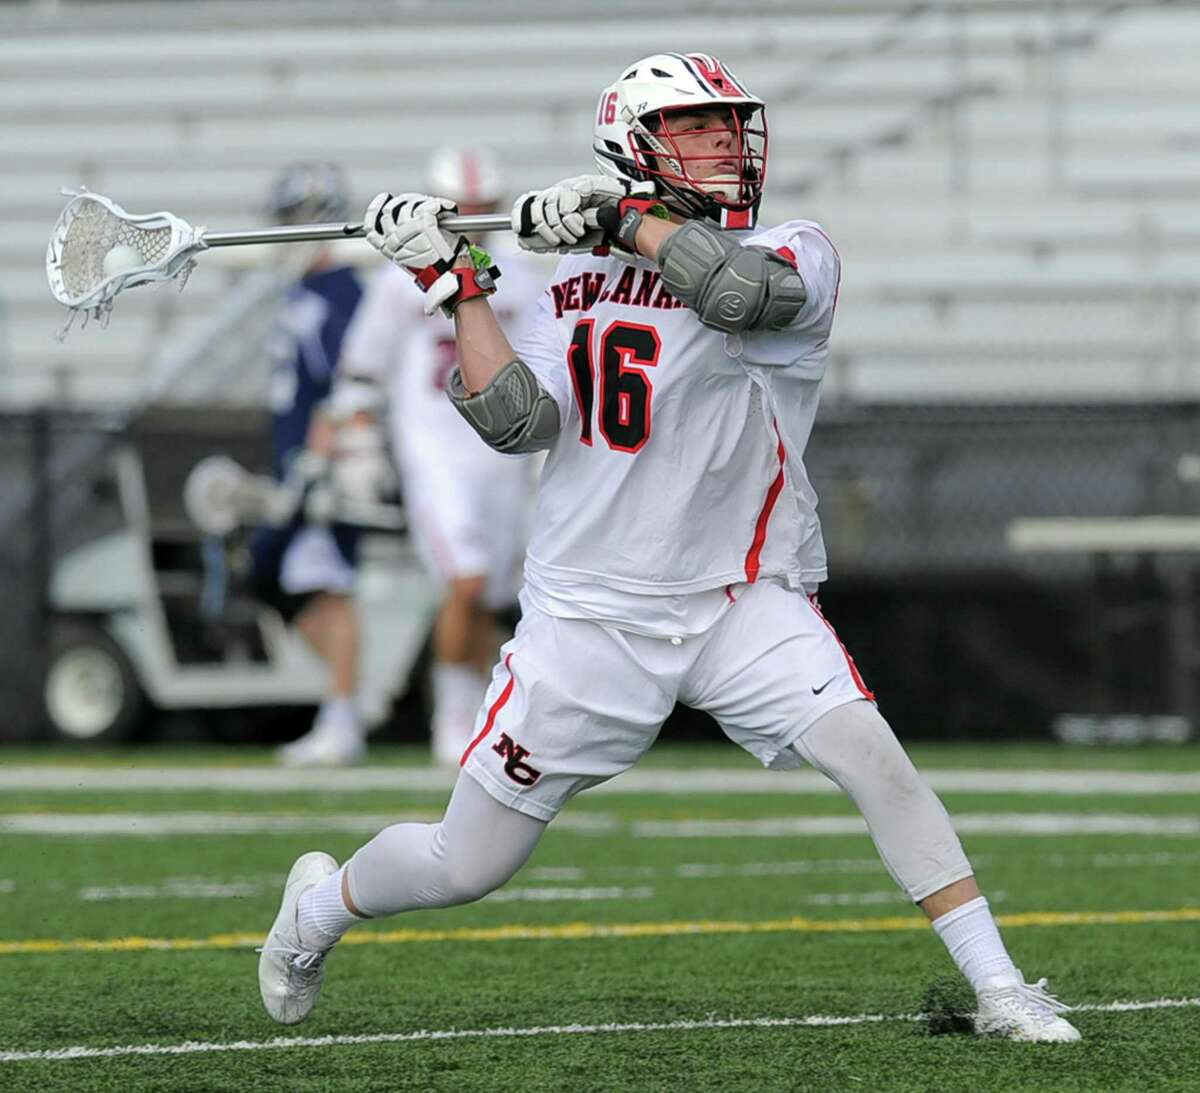 New Canaan's Graham Braden fires a shot against Wilton on Wednesday. Braden scored the game-winner with 11 seconds remaining.